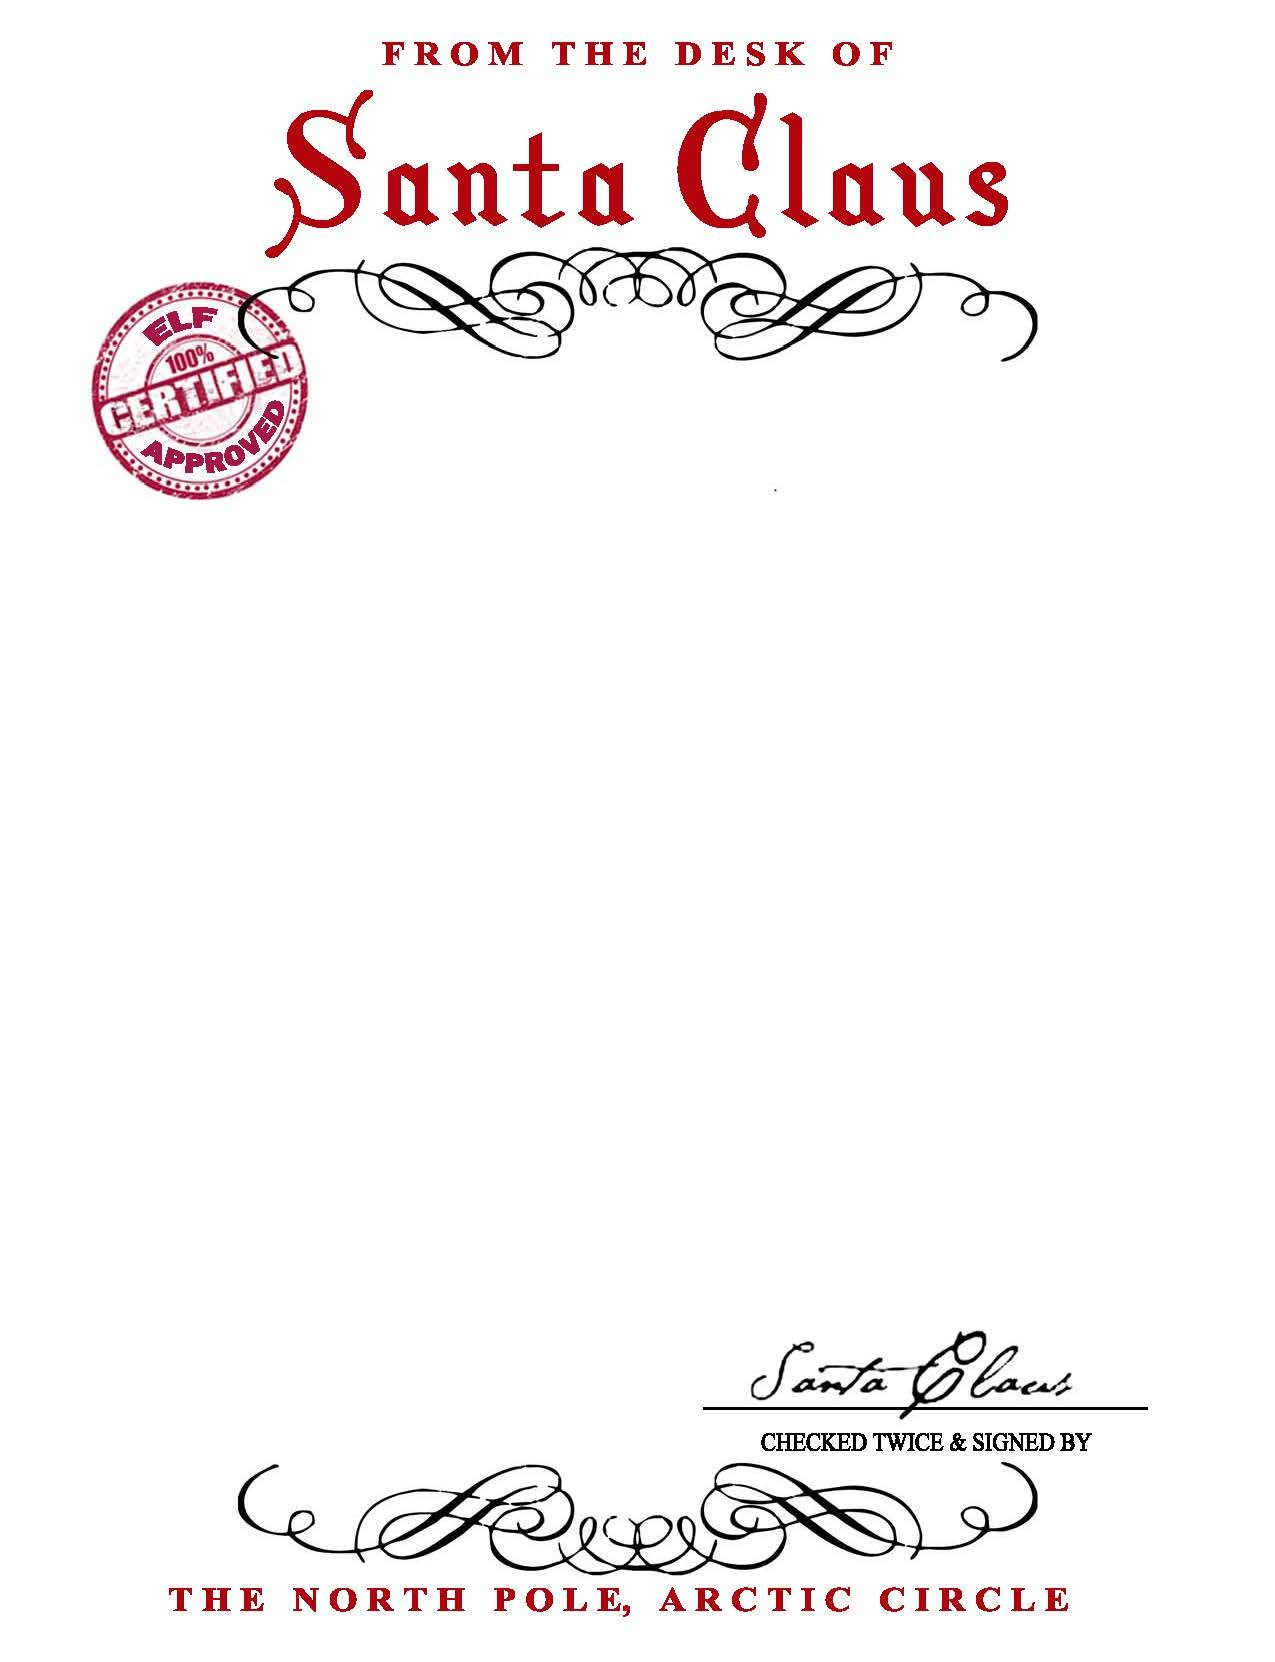 Santa claus stationary free printable click here for a free printable version of the santa claus letterhead spiritdancerdesigns